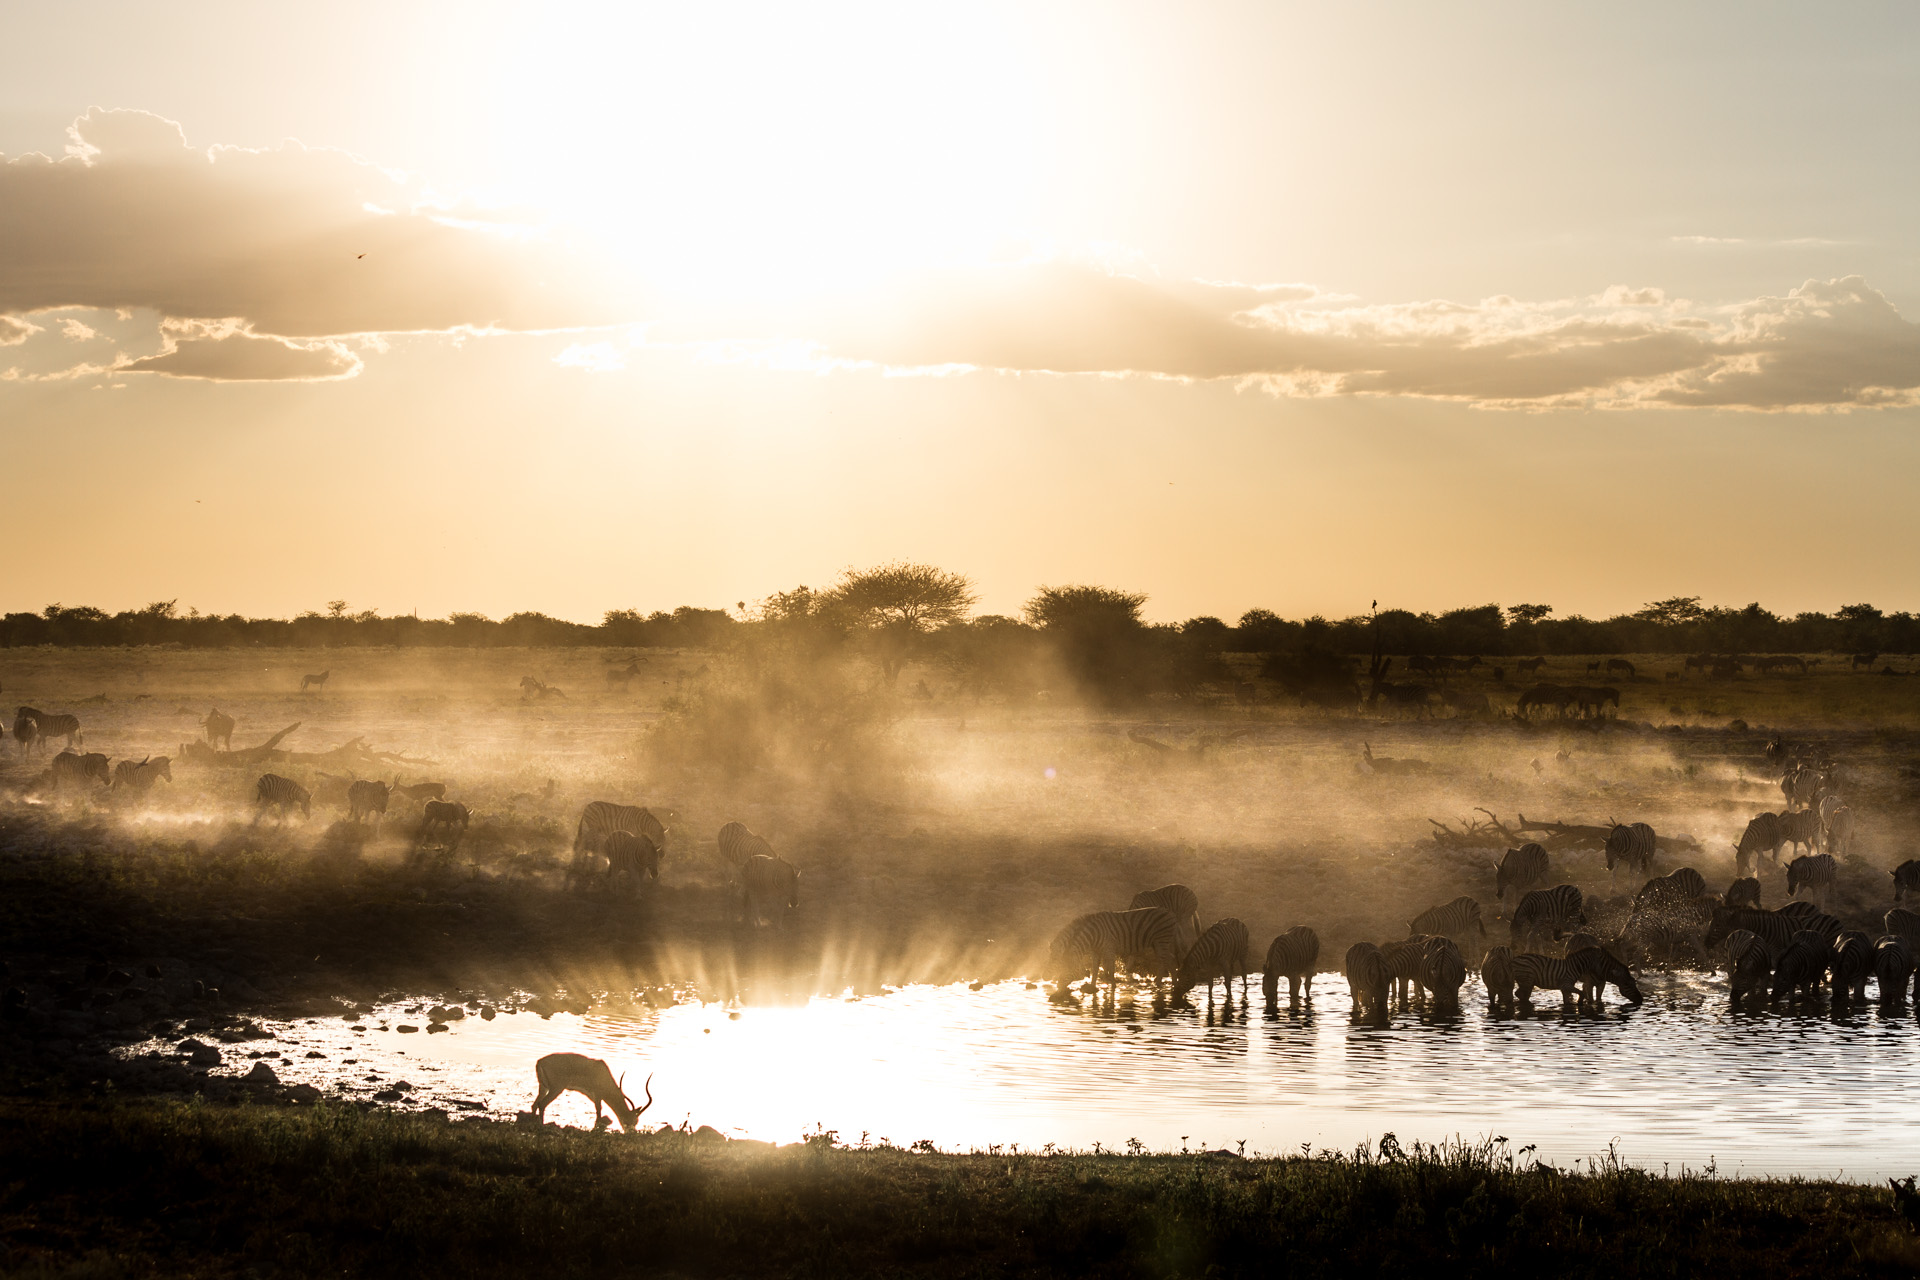 sunset light over a watering hole in etosha